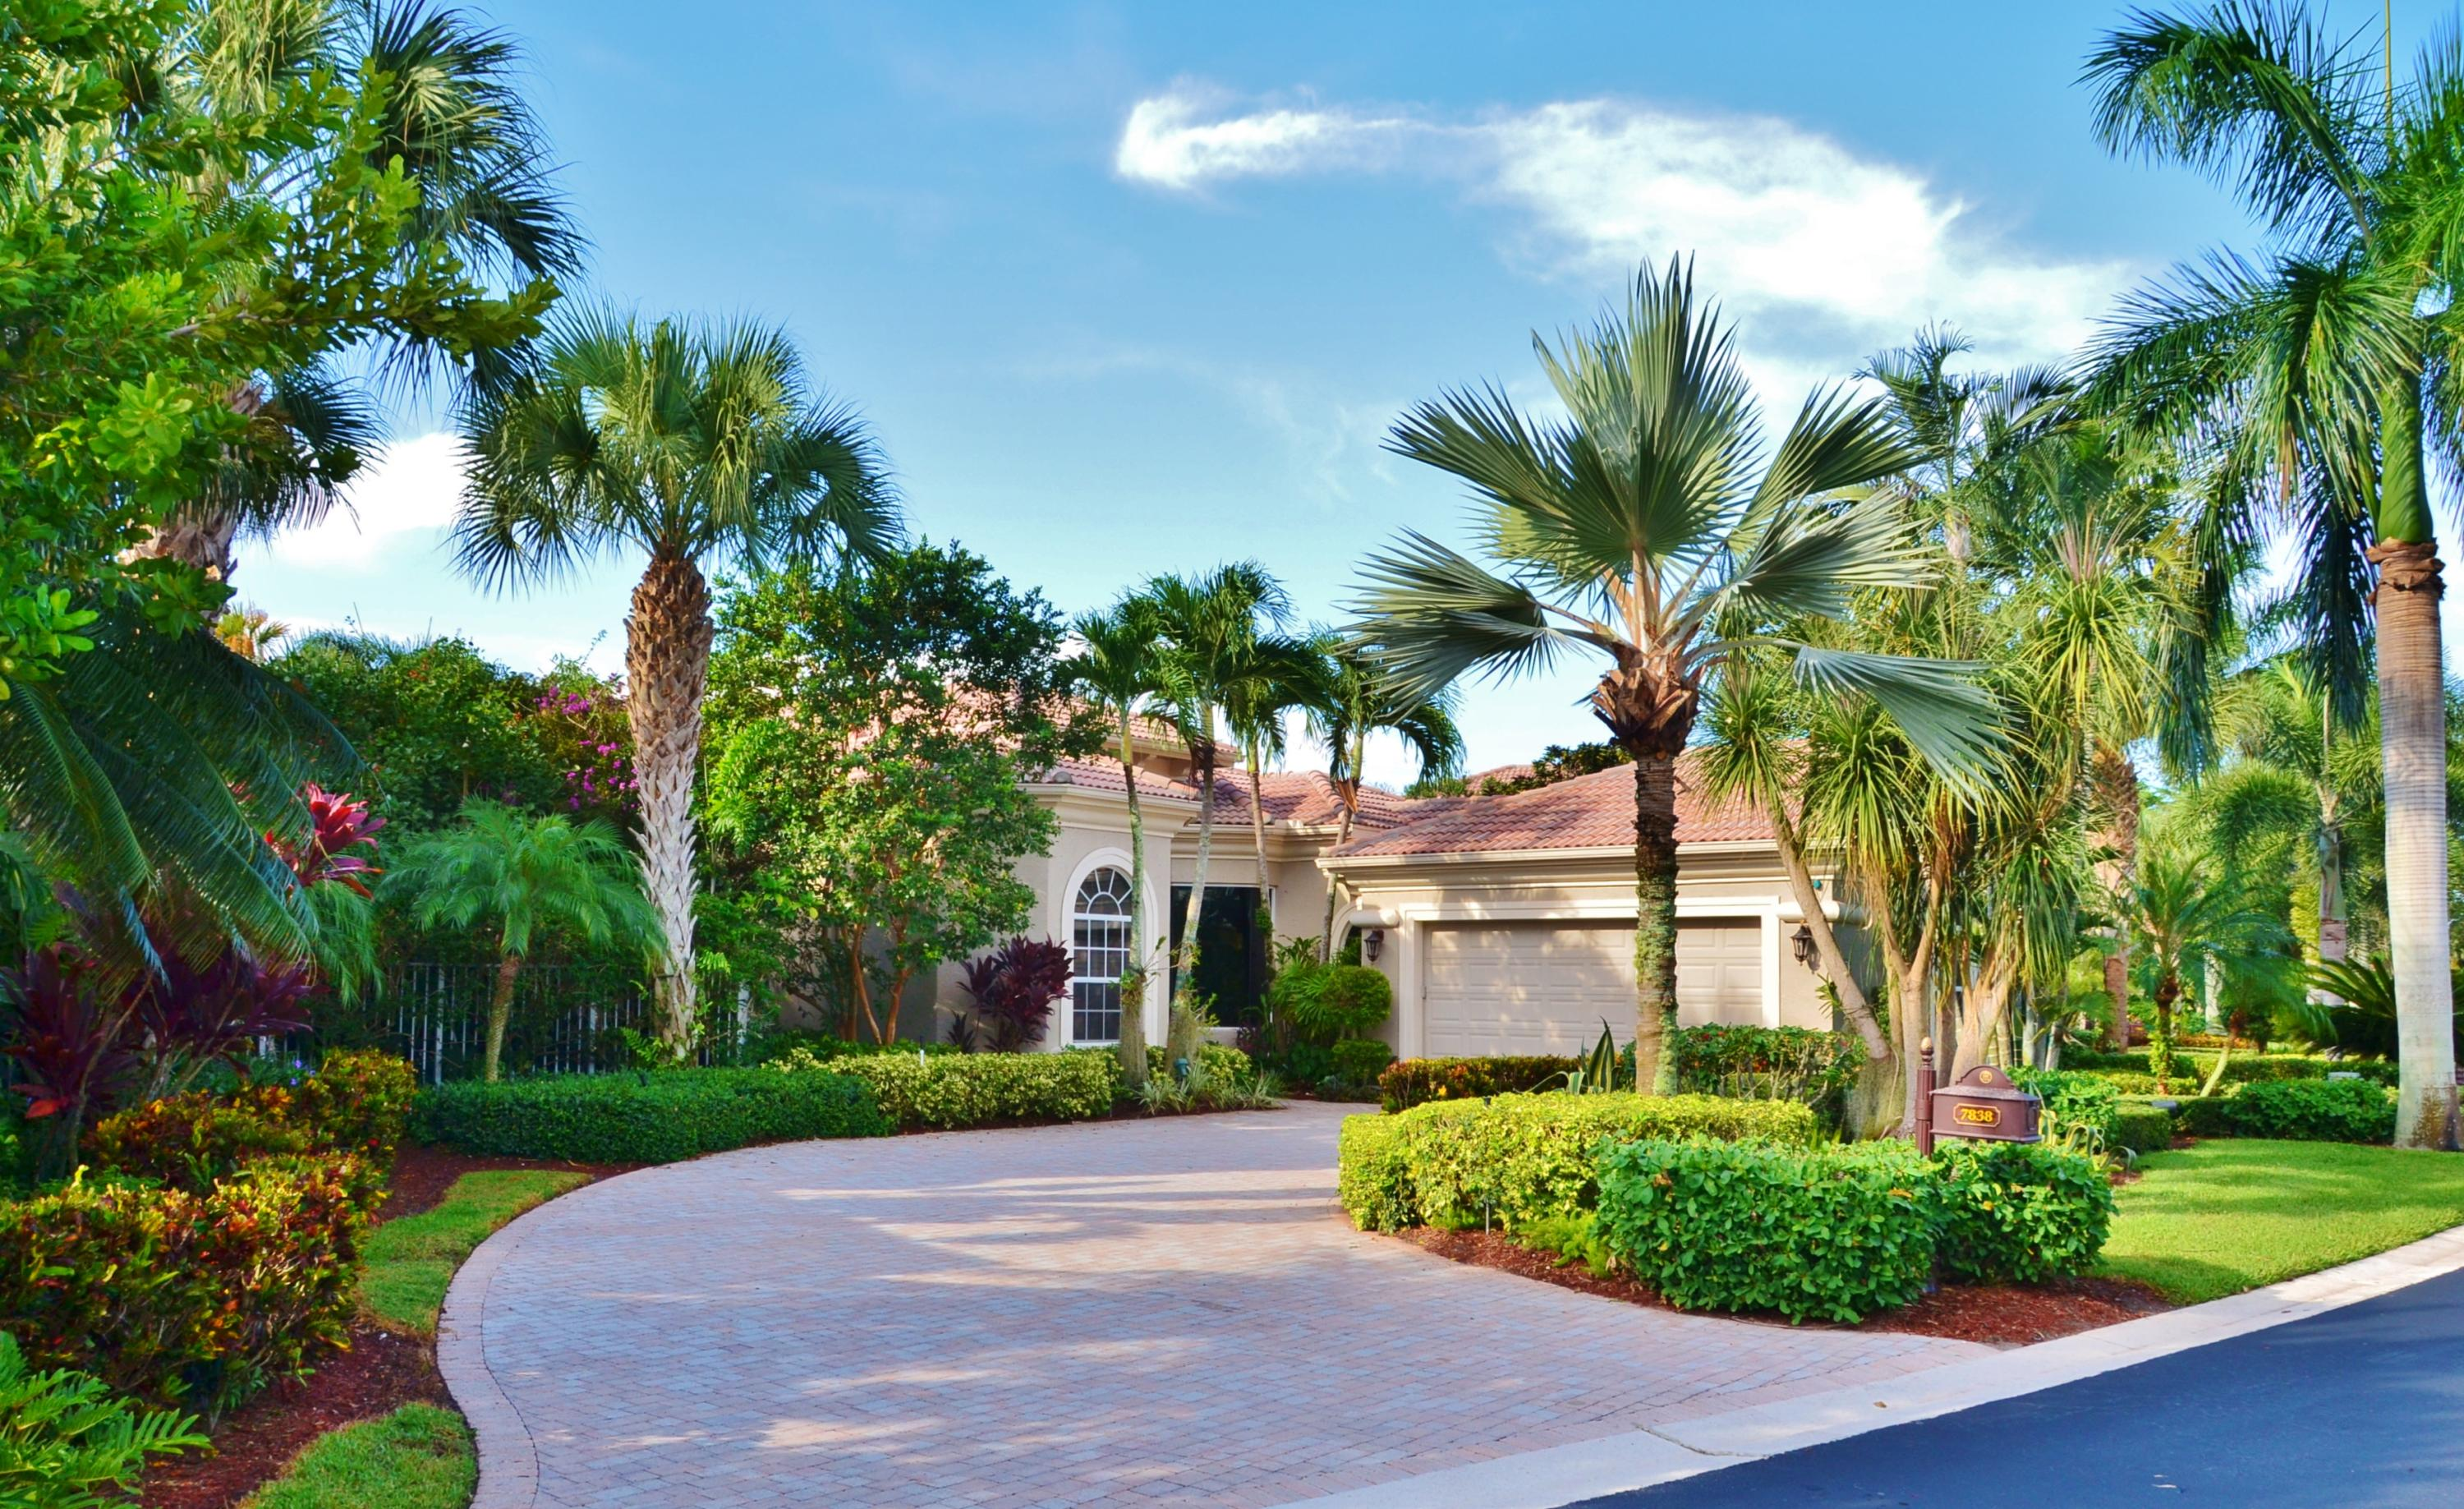 7838 Villa D Este Way  Delray Beach, FL 33446